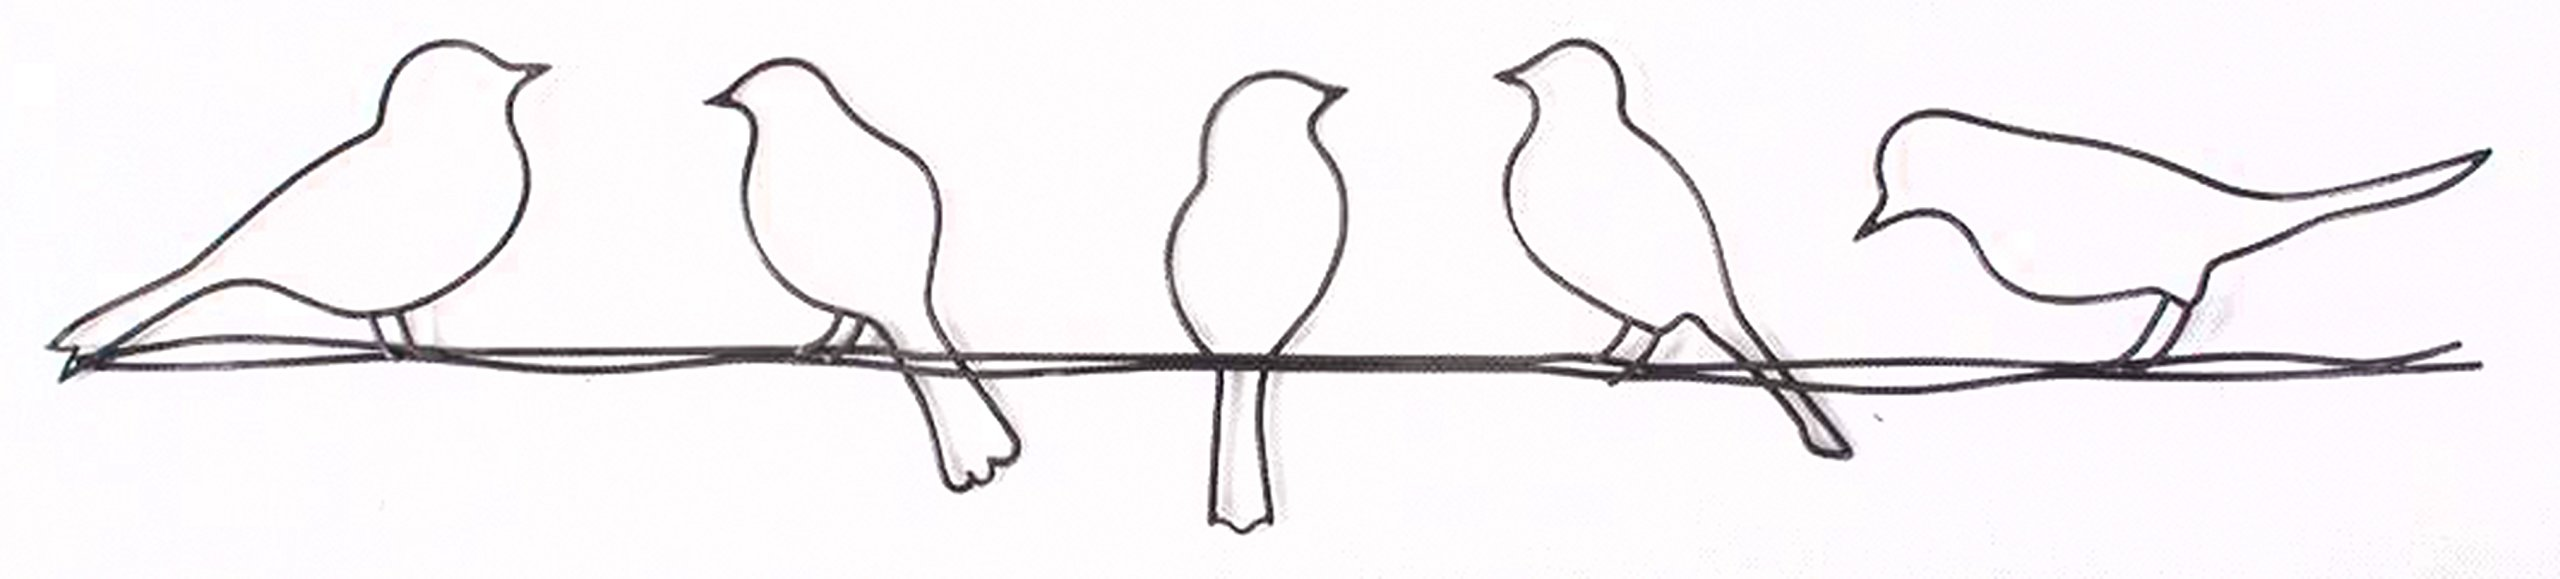 Graham & Brown 41-221 Bird on a Wire Metal Wall Art by Graham & Brown